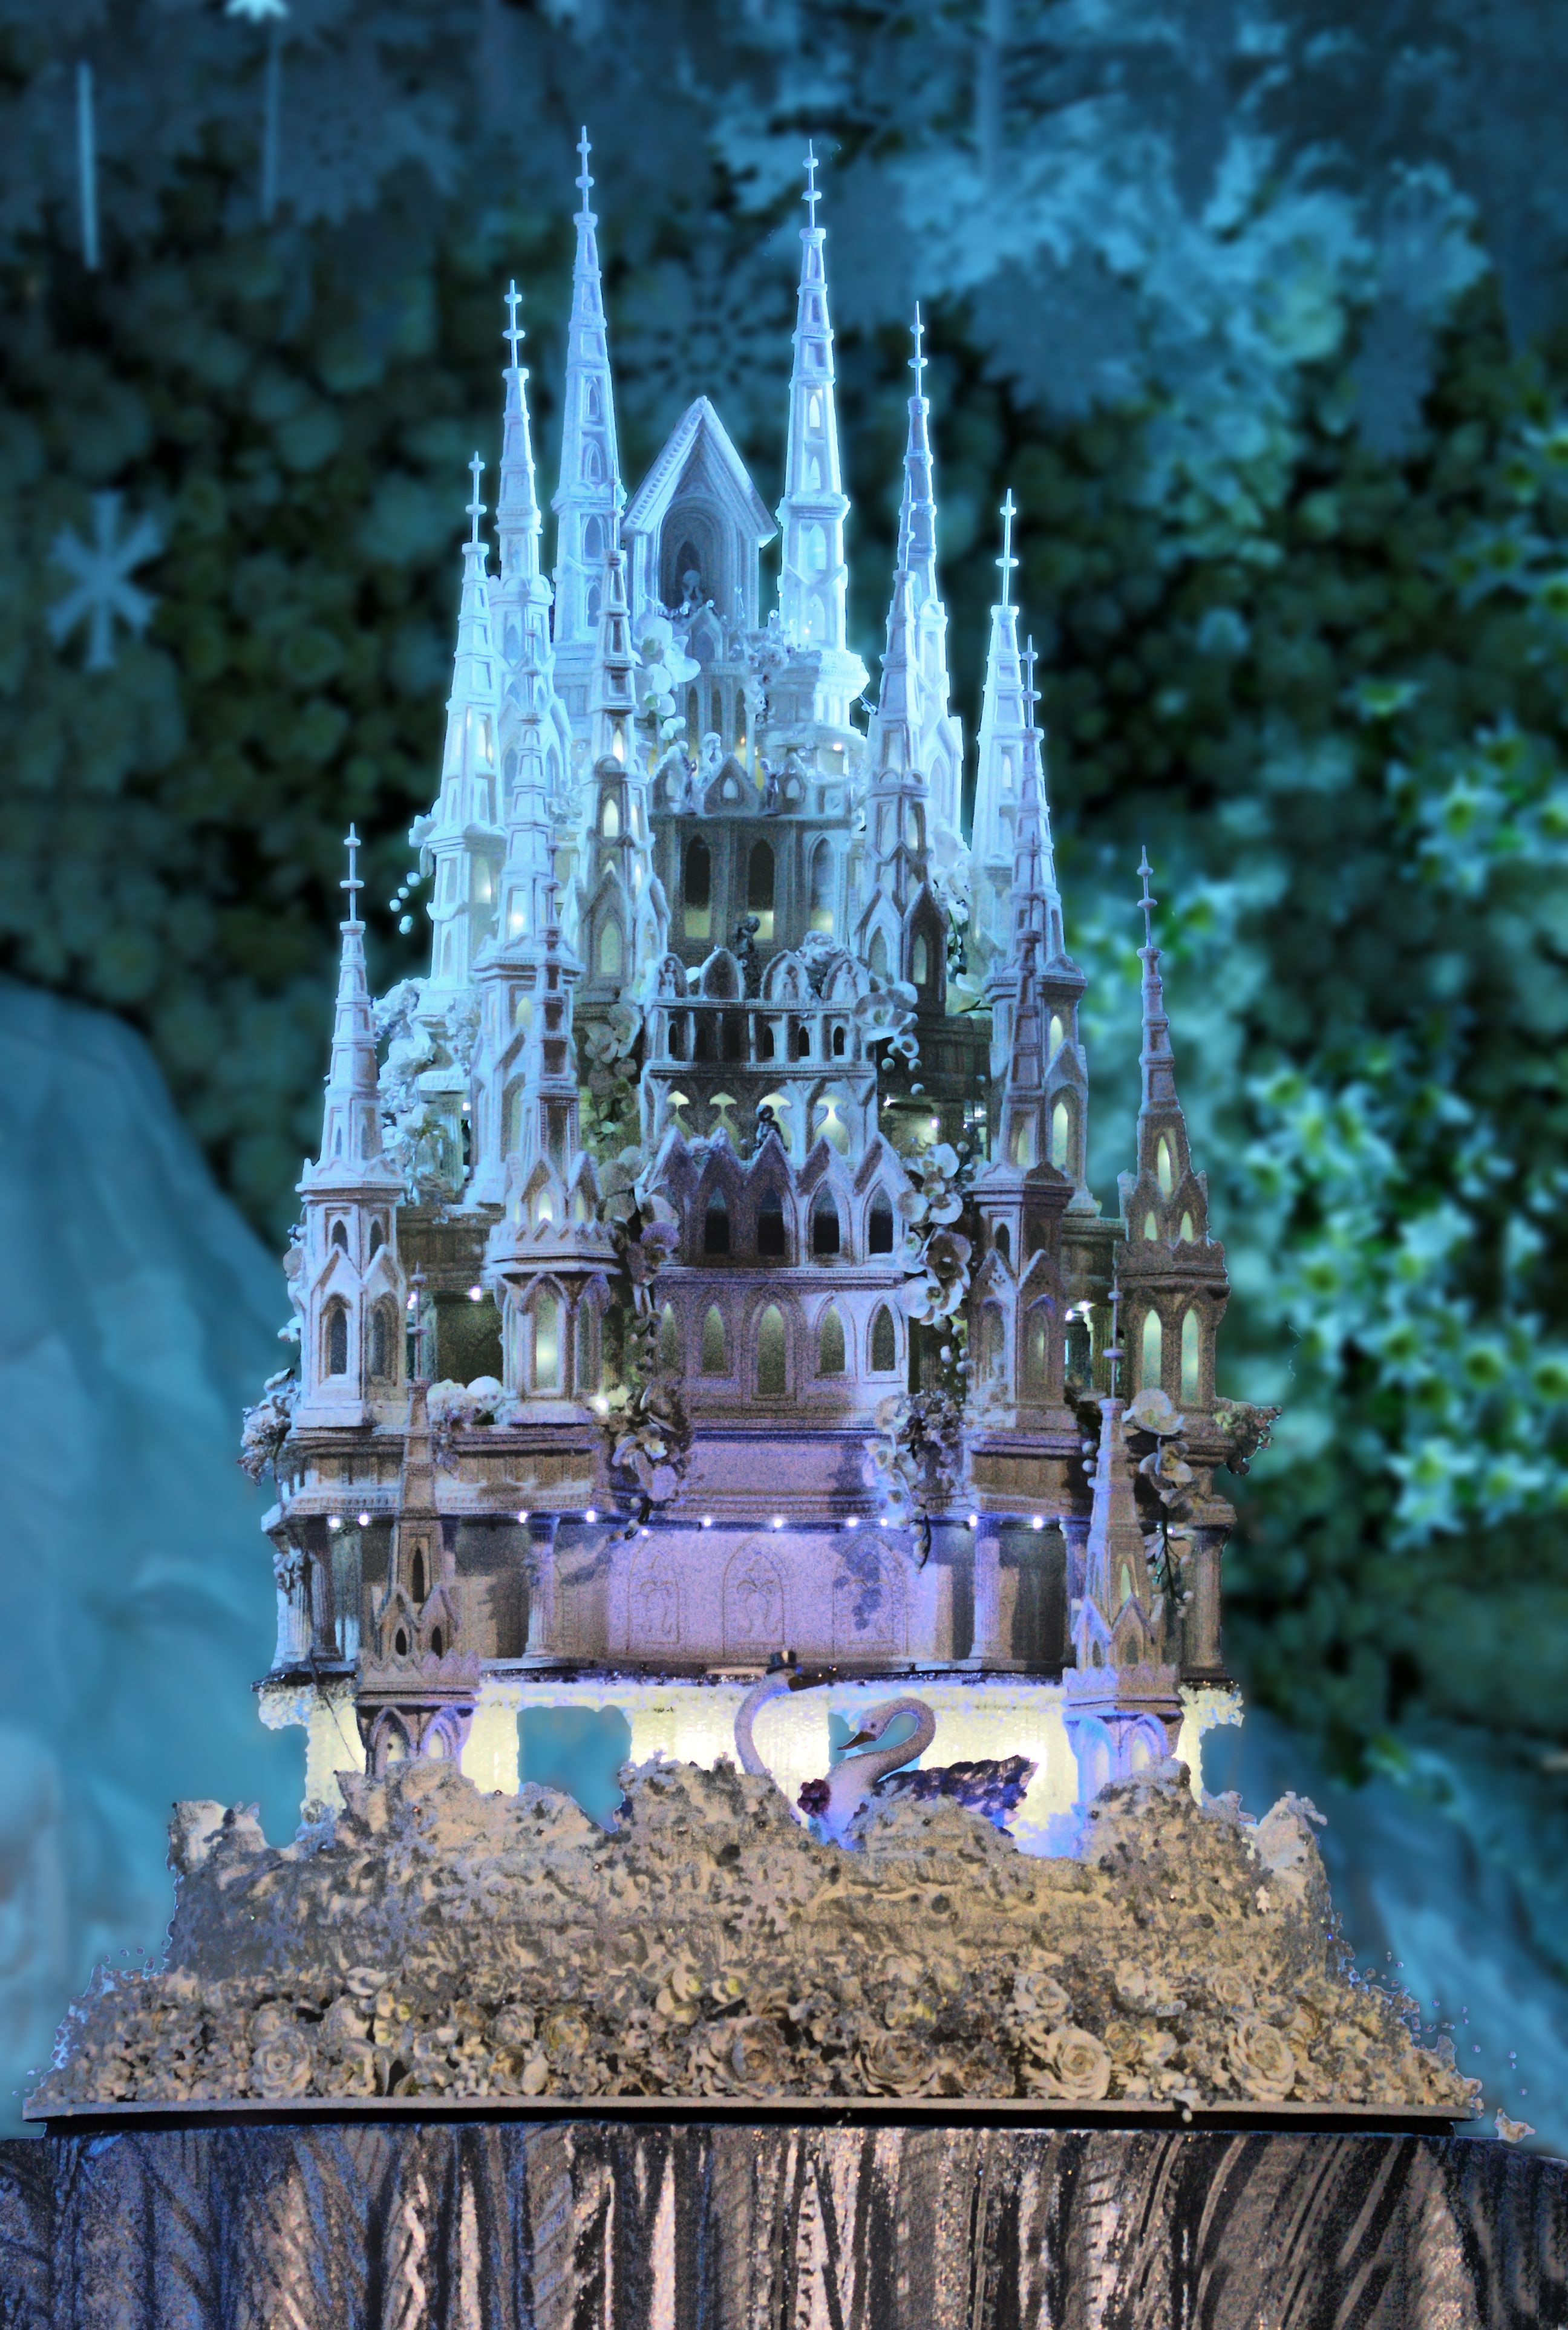 An amazing 3 meters high Ice Castle wedding cake by